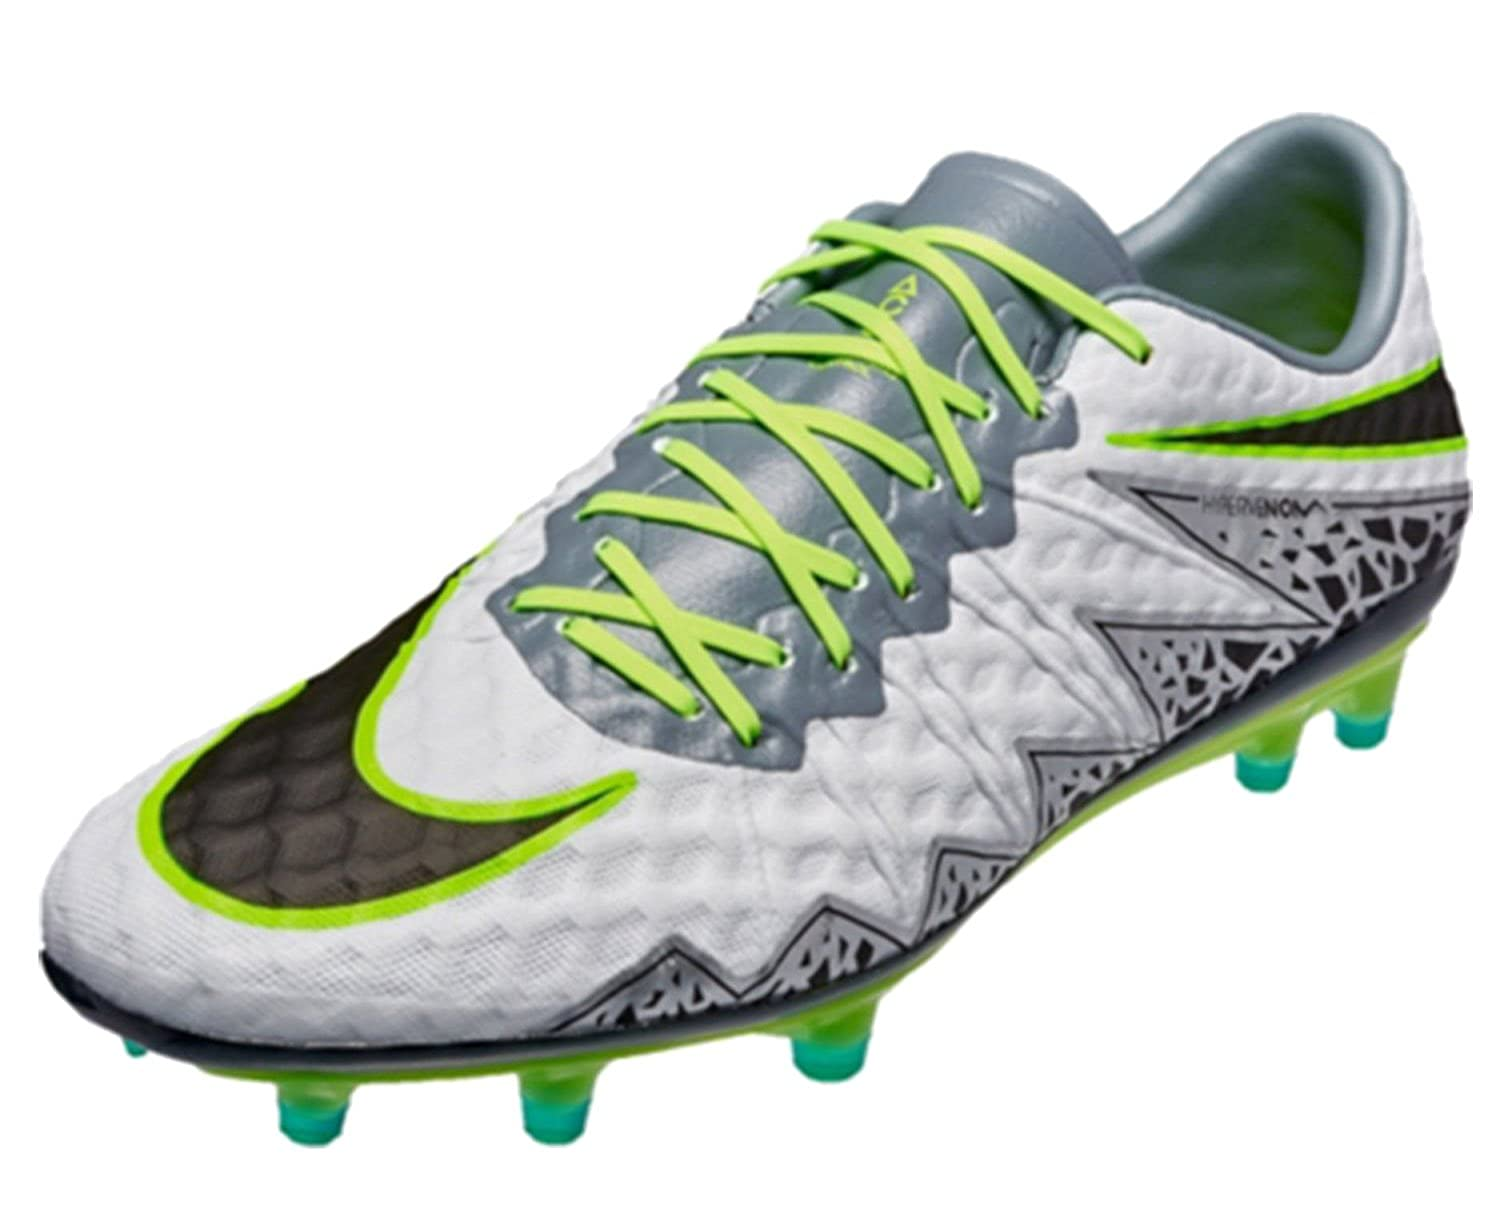 low price buy sale cheap Nike Men's Hyper Venom Phinish (FG) Firm-Ground Soccer Cleats